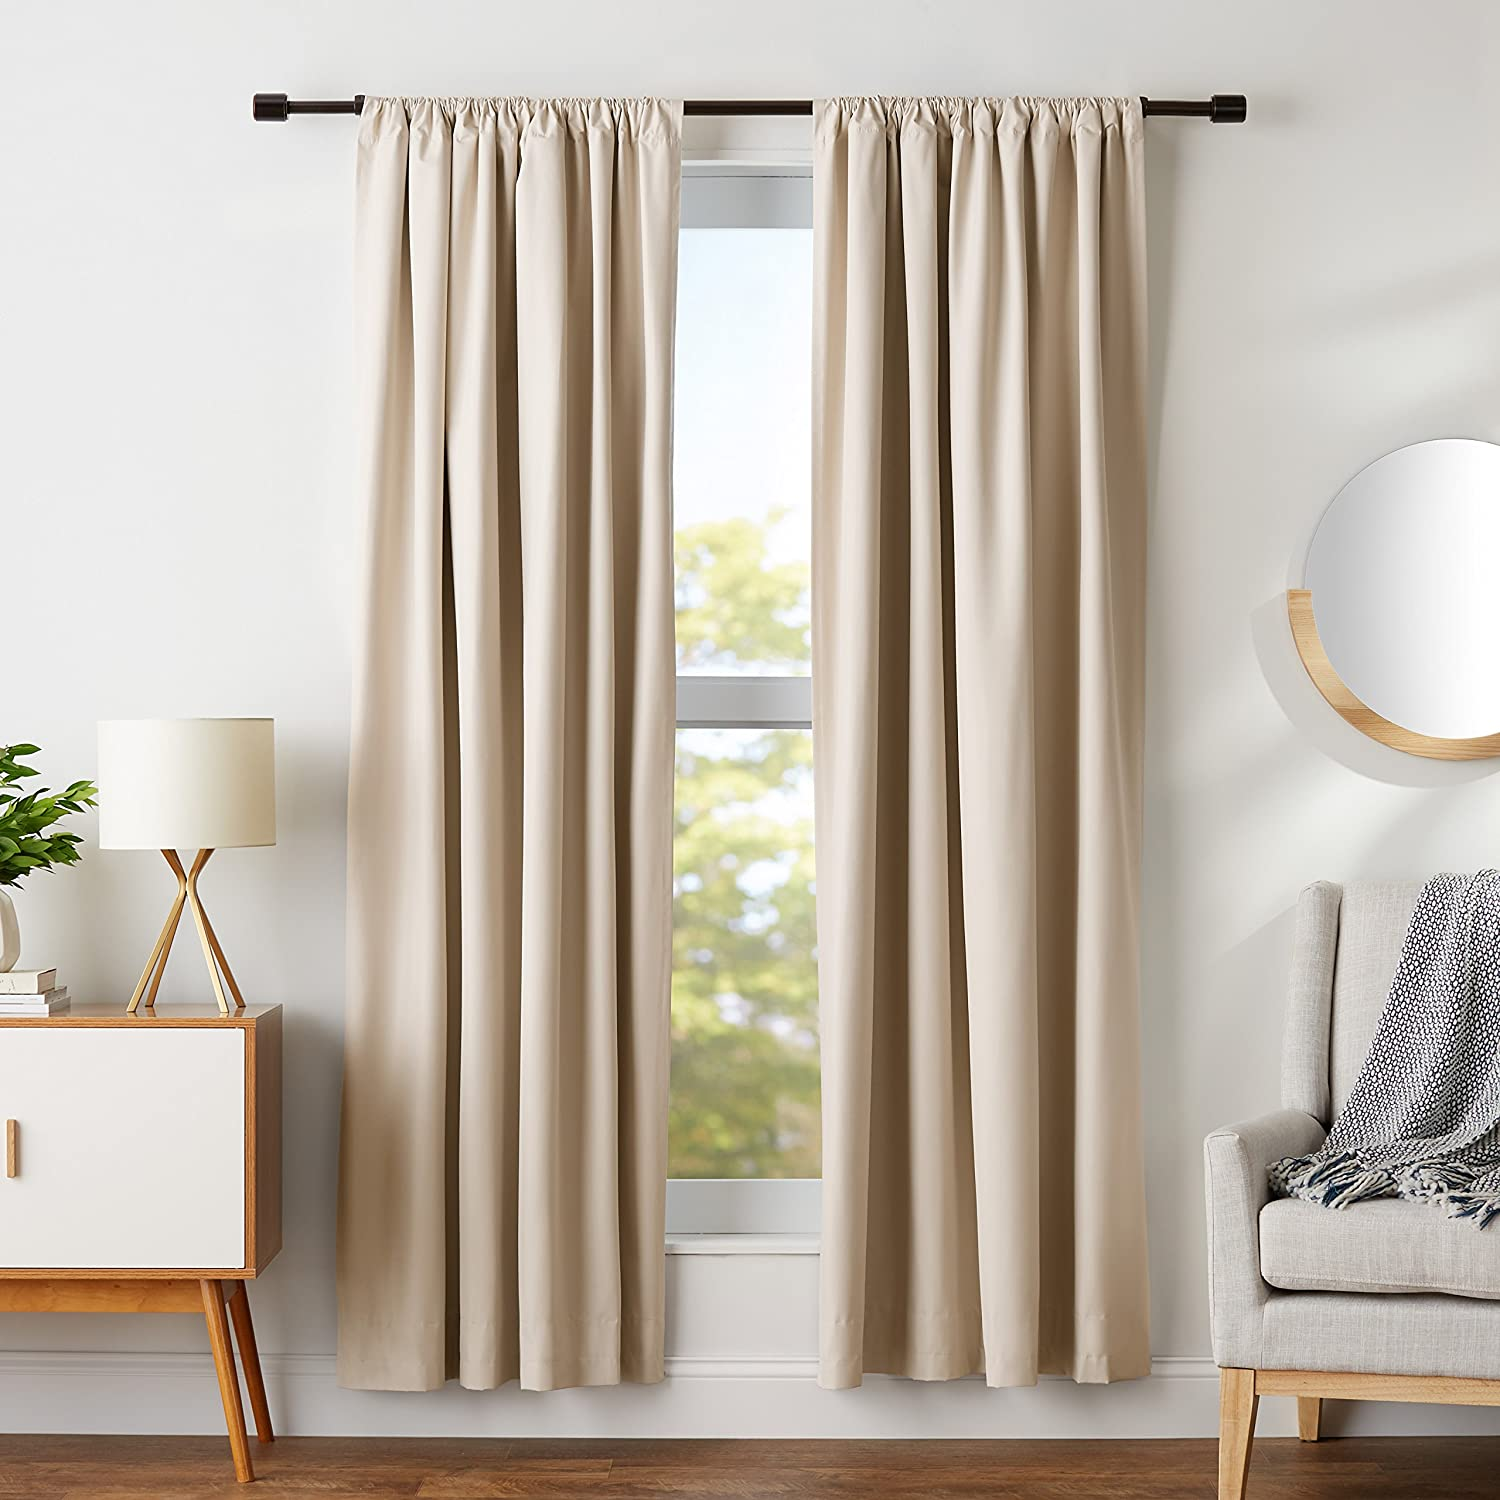 AmazonBasics Room Darkening Thermal Insulating Blackout Curtain Set with Tie Backs - 52 x 84 Inches, Beige (2 Panels)